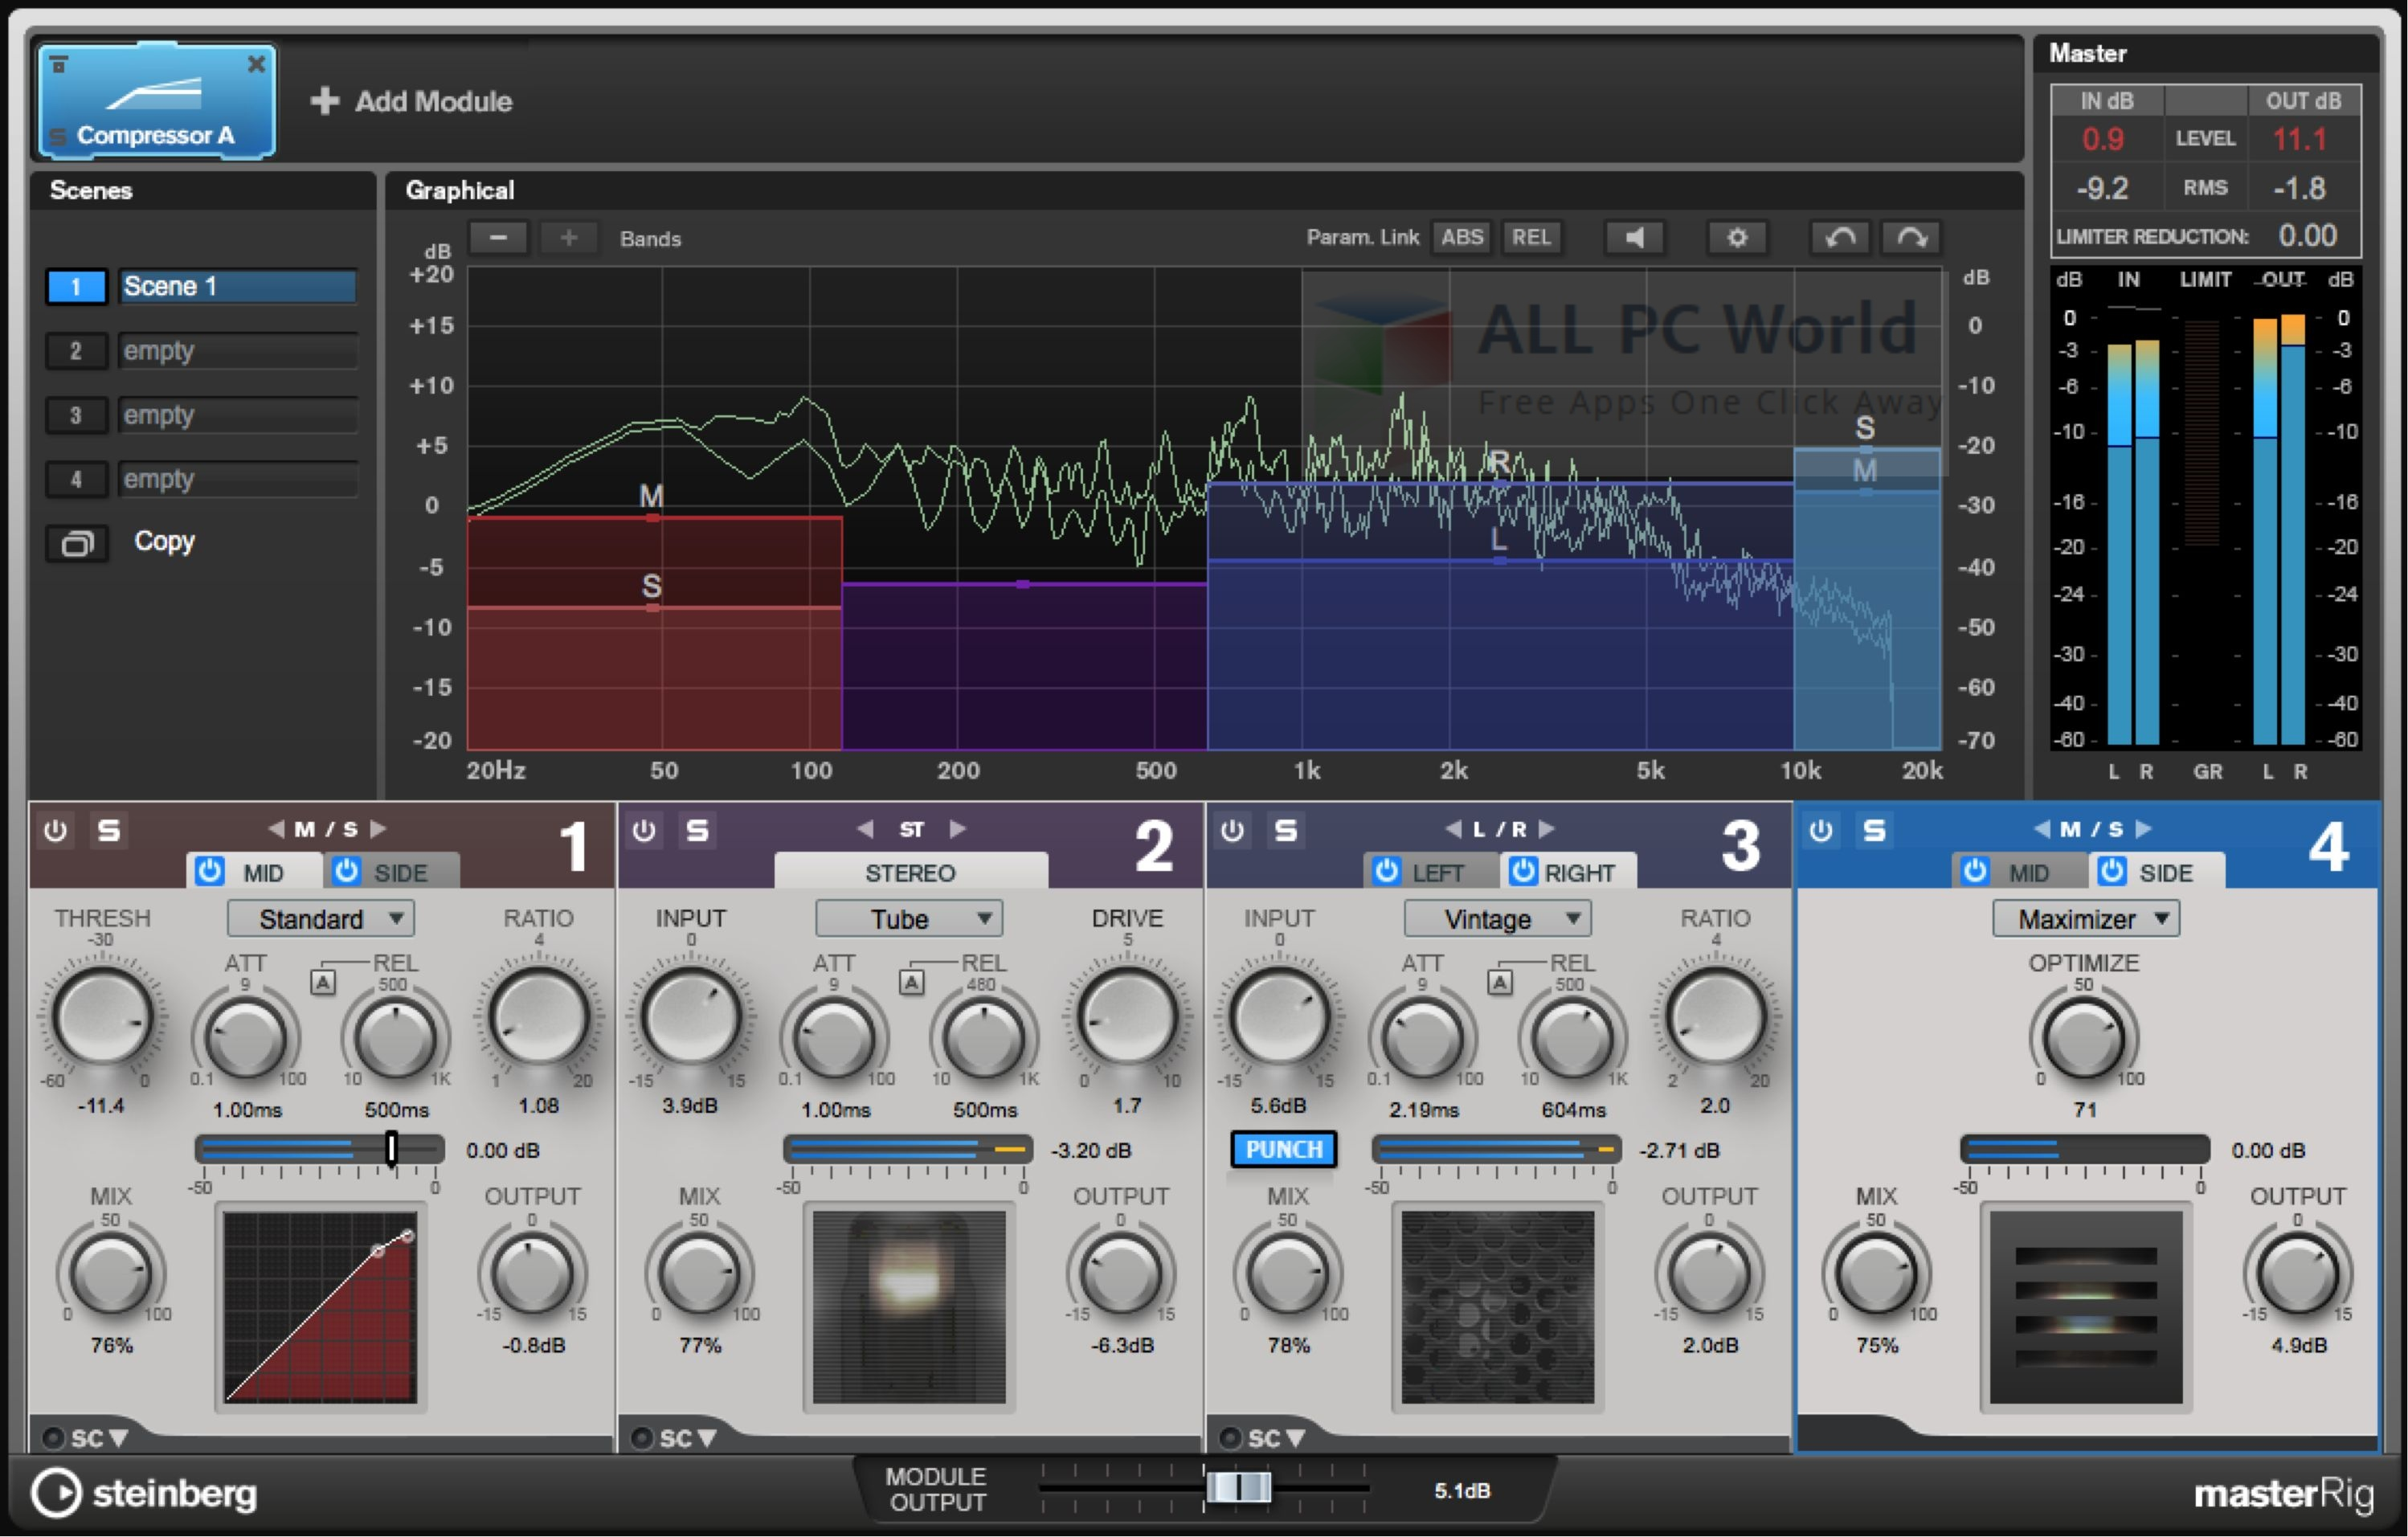 Steinberg WaveLab Elements 9.0.30 x64 Extended Review